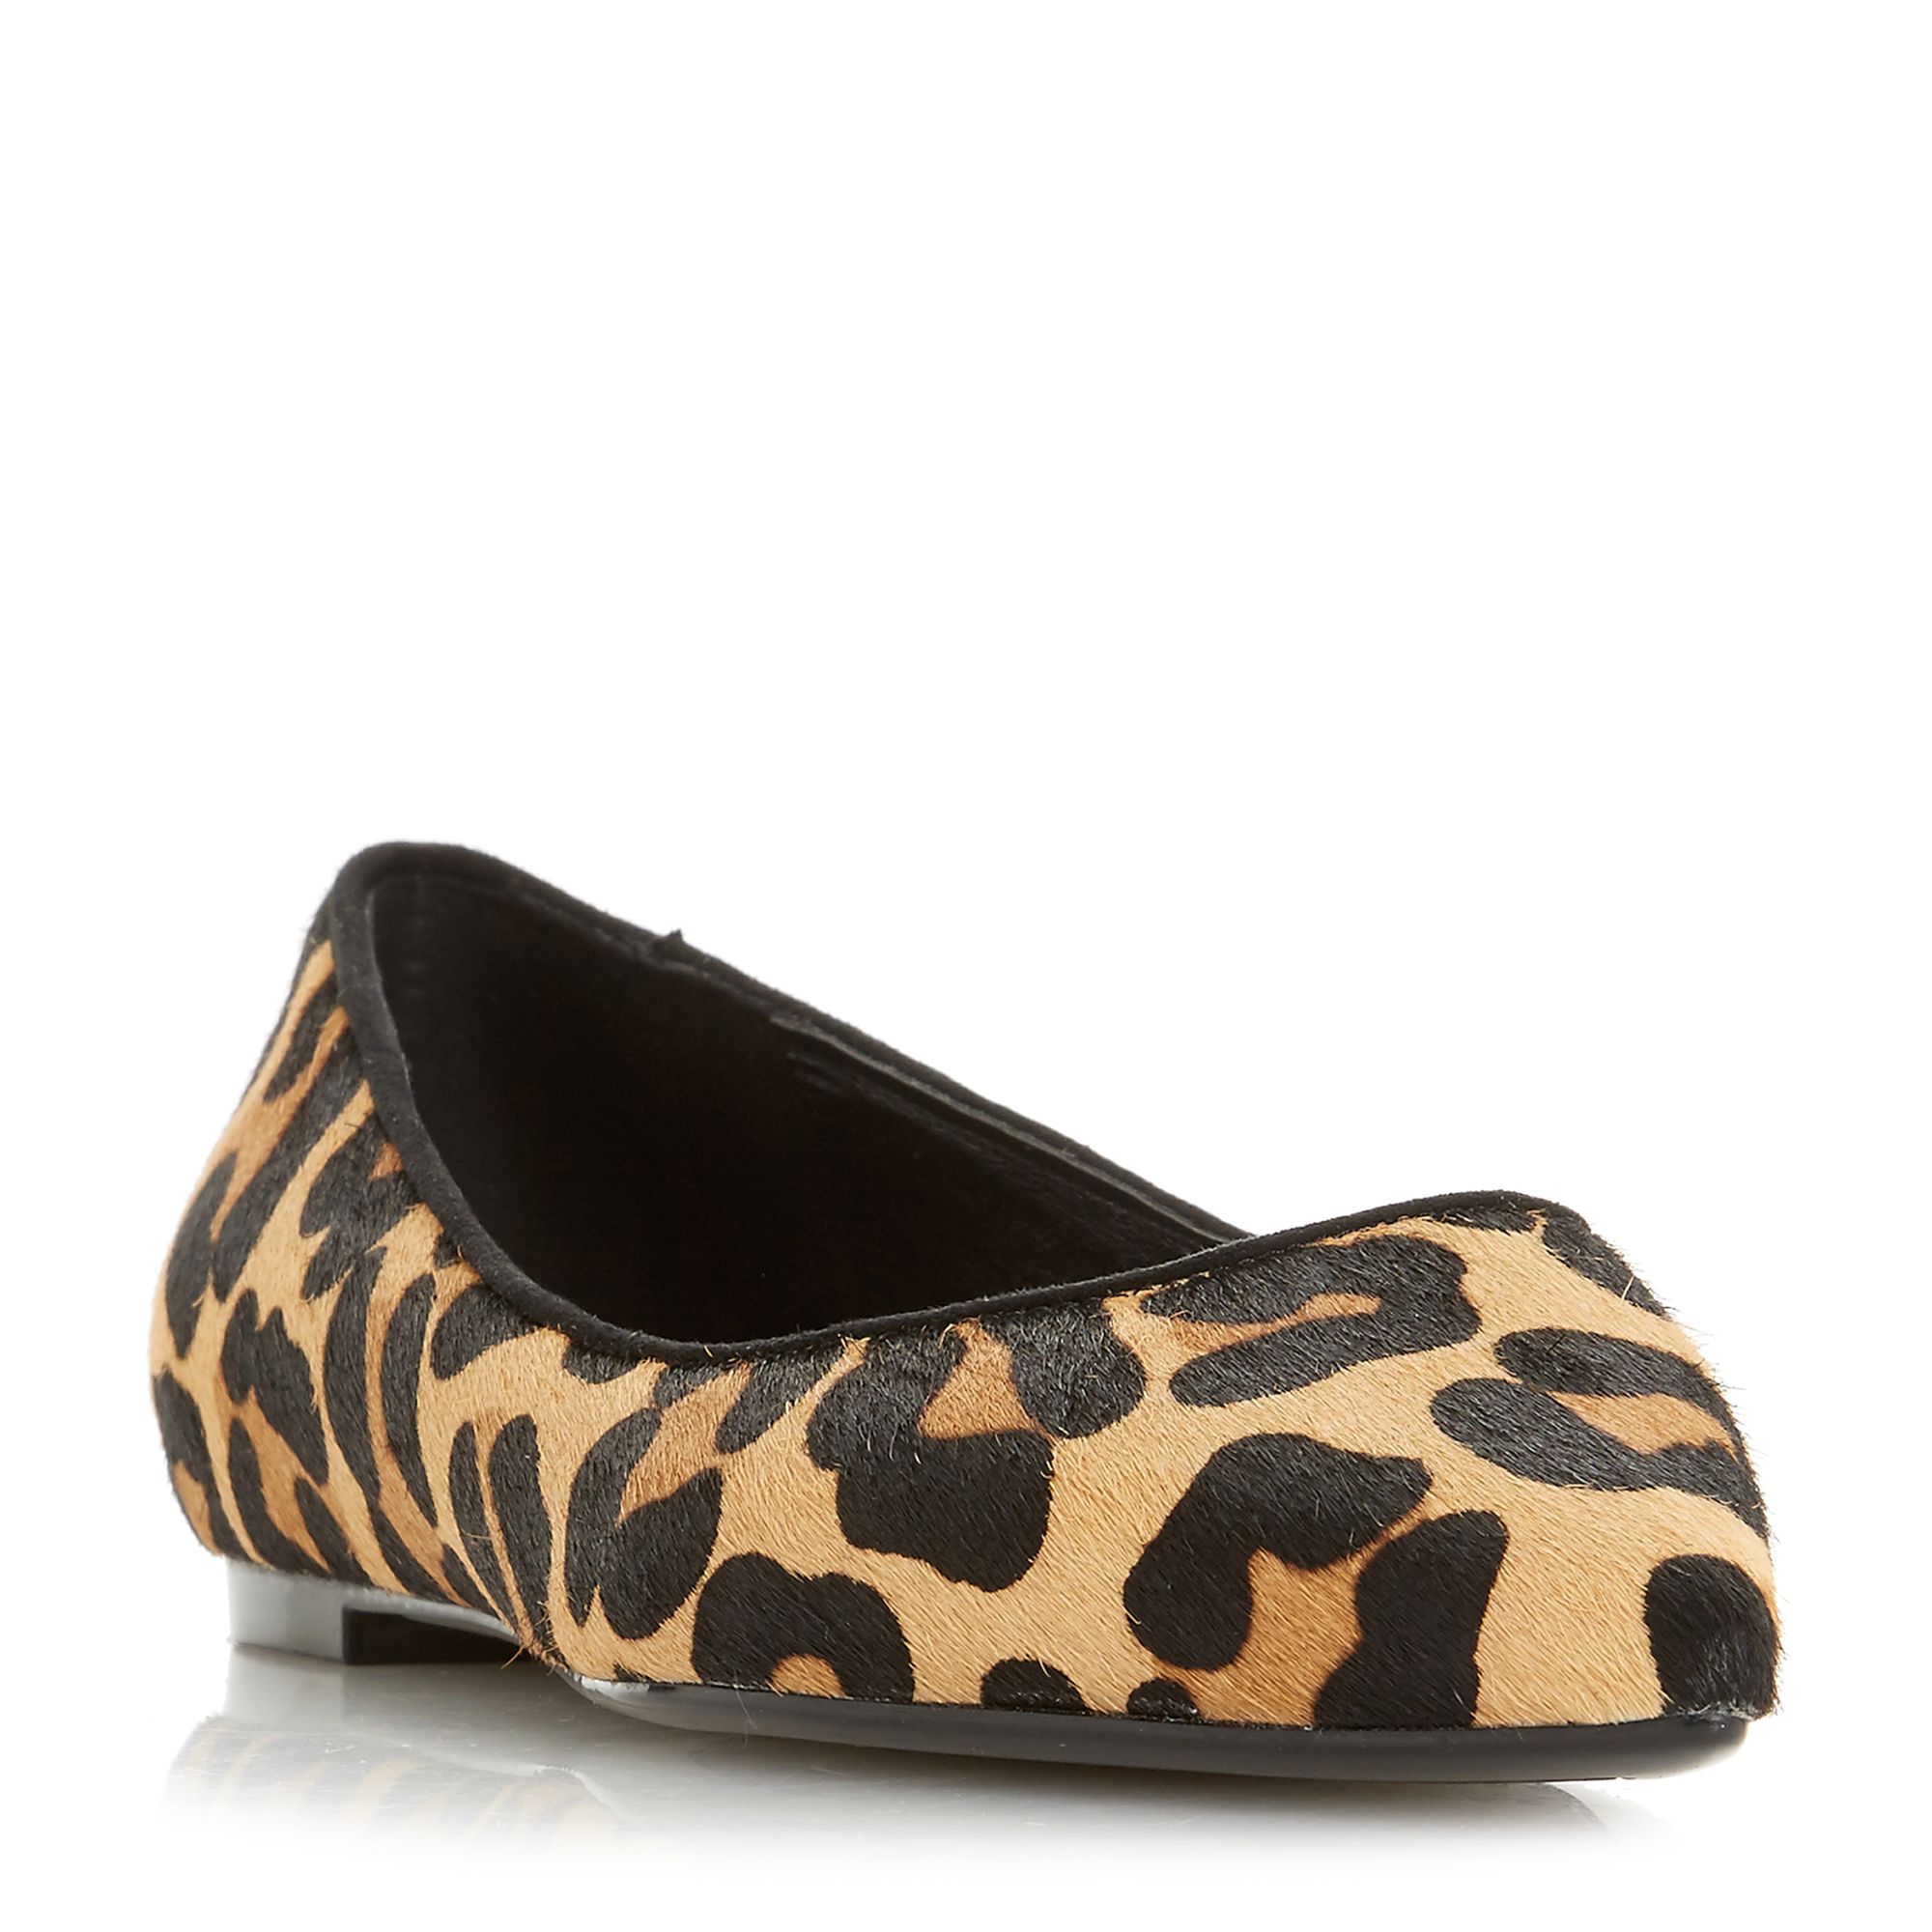 Dune Aeron Flex Pointed Toe Slip On Shoes, Leopard